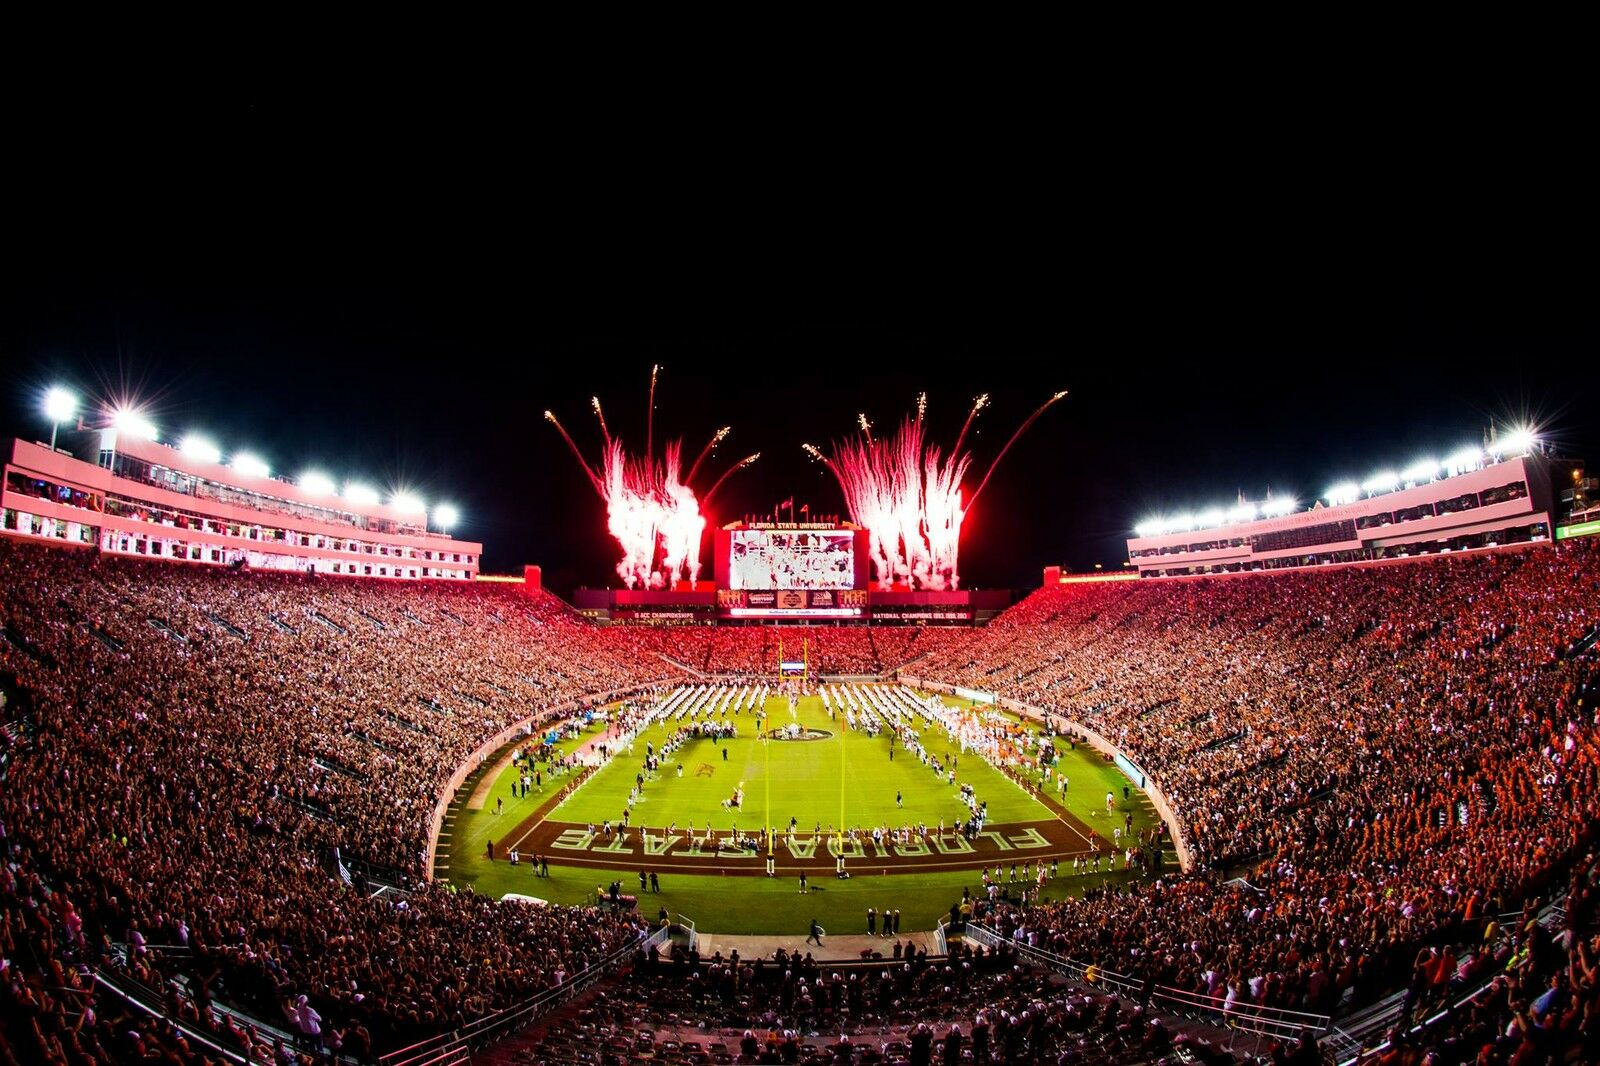 2018 Florida State Seminoles Football Season Tickets - Season Package (Includes Tickets for all Home Games)